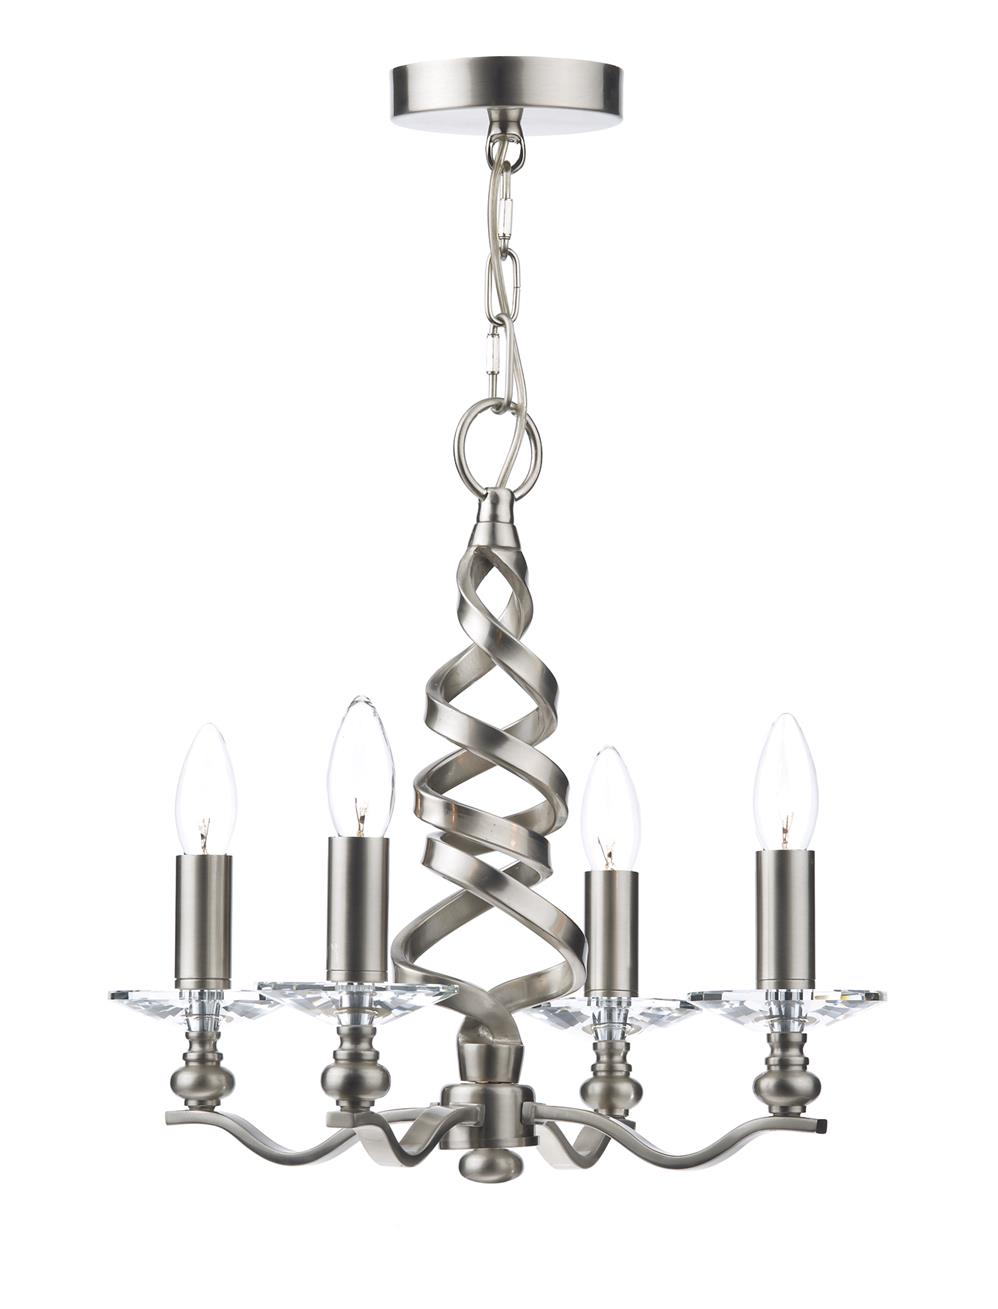 Dar ALA0446 Alassio 4 Light Pendant in Satin Chrome